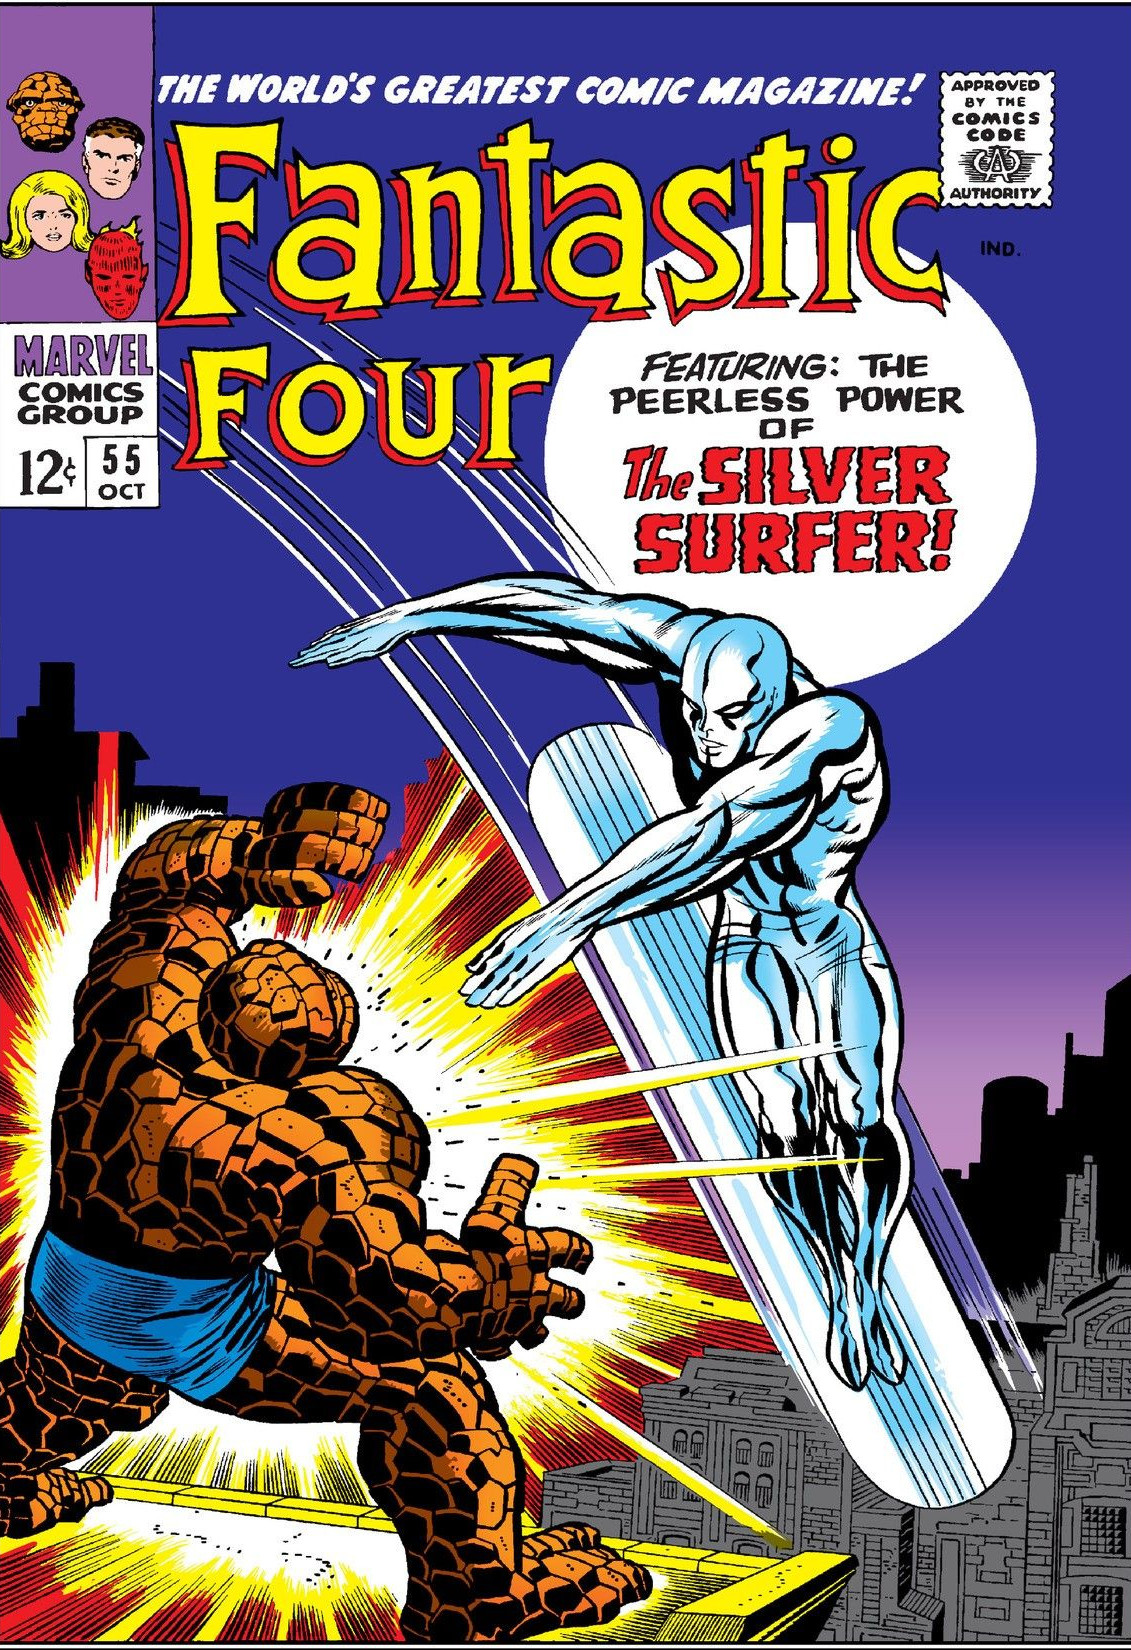 Fantastic Four Vol 1 55